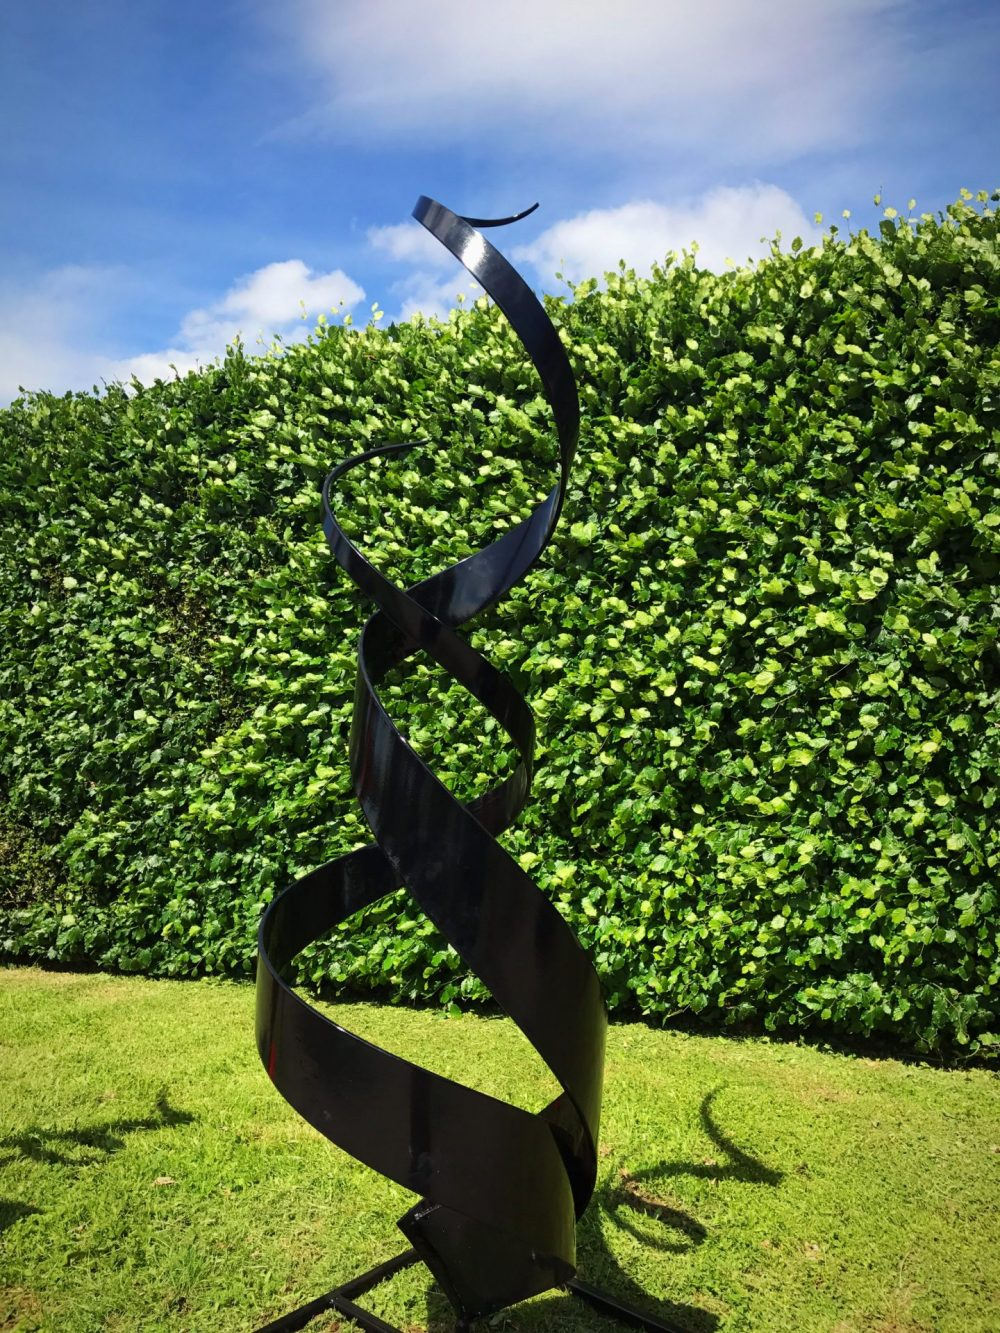 Shiny Black Spiral Abstract Sculpture